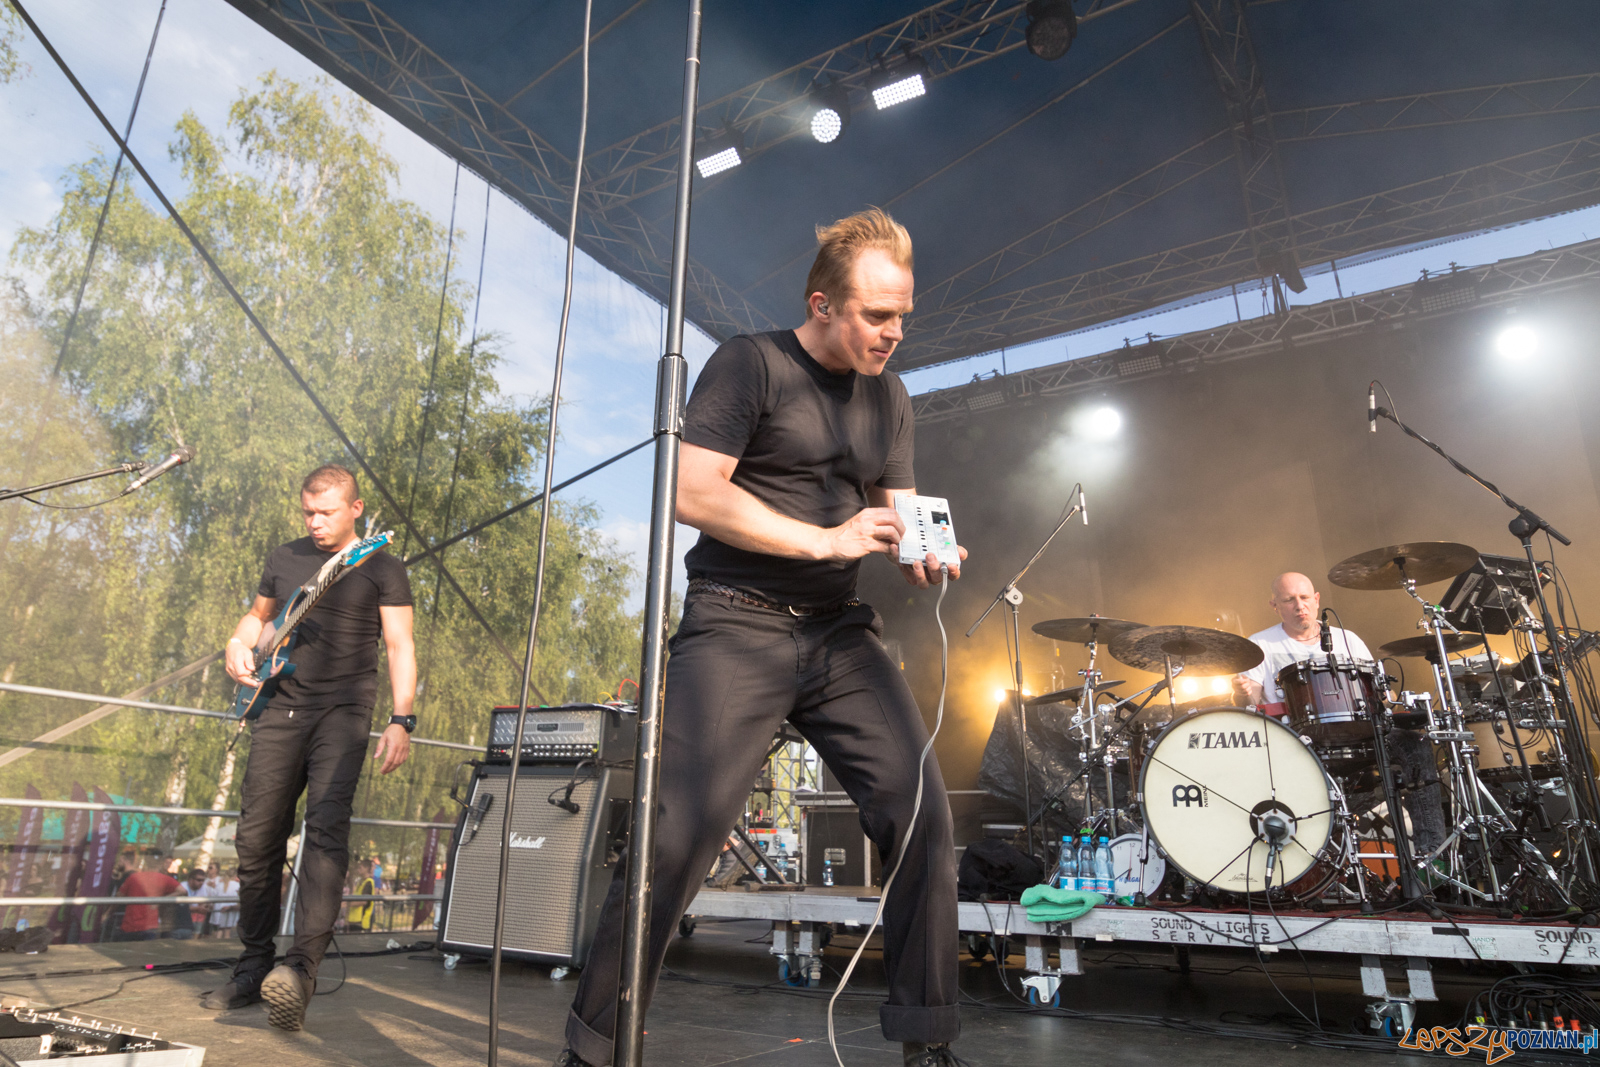 #NaFalach – Luxfest – Coma